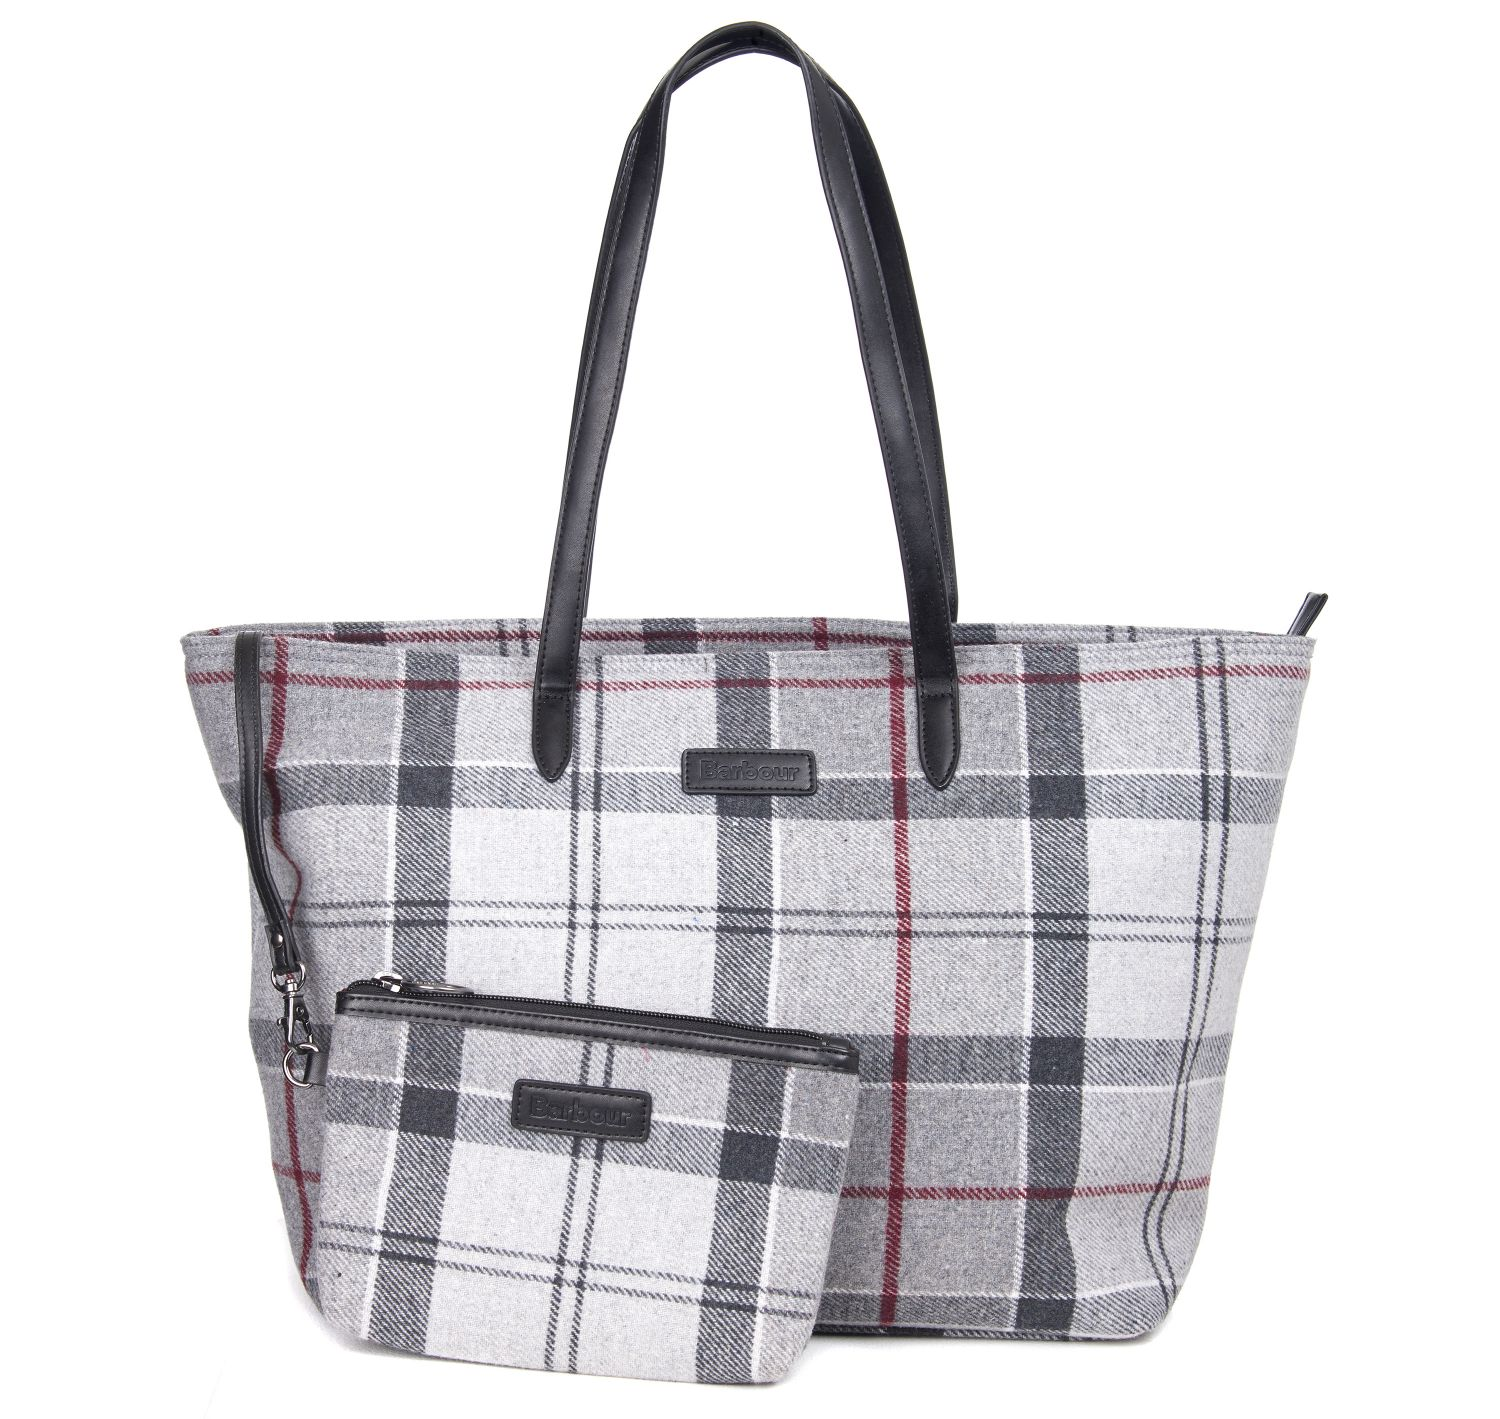 Barbour Barbour Witford Tartan Tote Bag Grey Barbour Lifestyle: From the Winter Tartan Collection